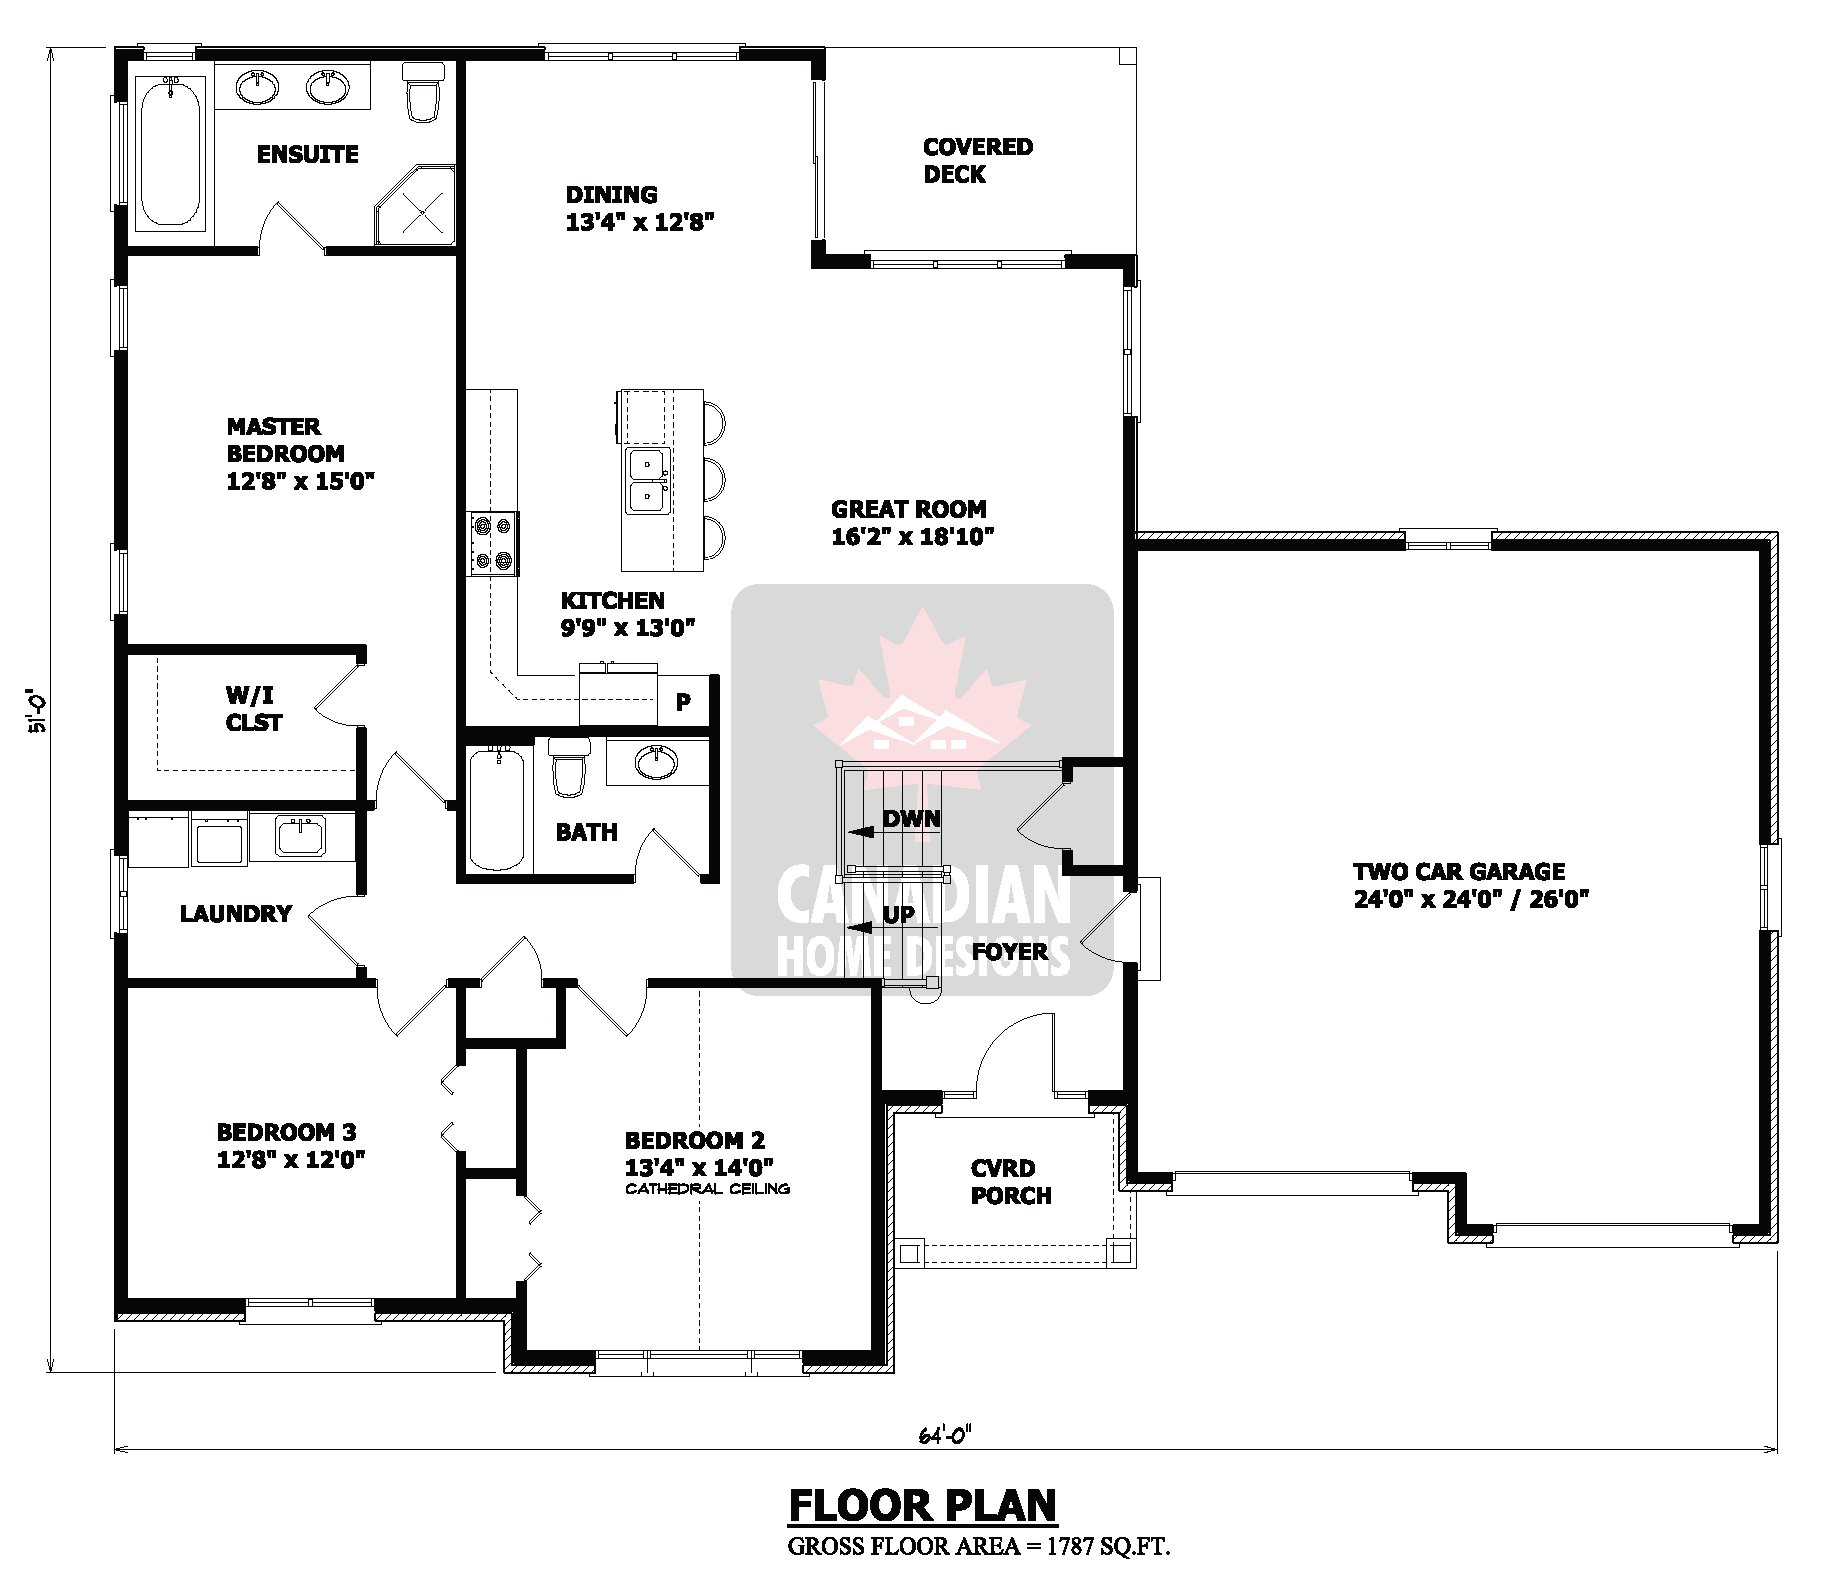 Small House Floor Plans Hillside House Plans Small House Floor Plans Canadian Home Plans Bungalow House Plans Bungalow Floor Plans Floor Plans